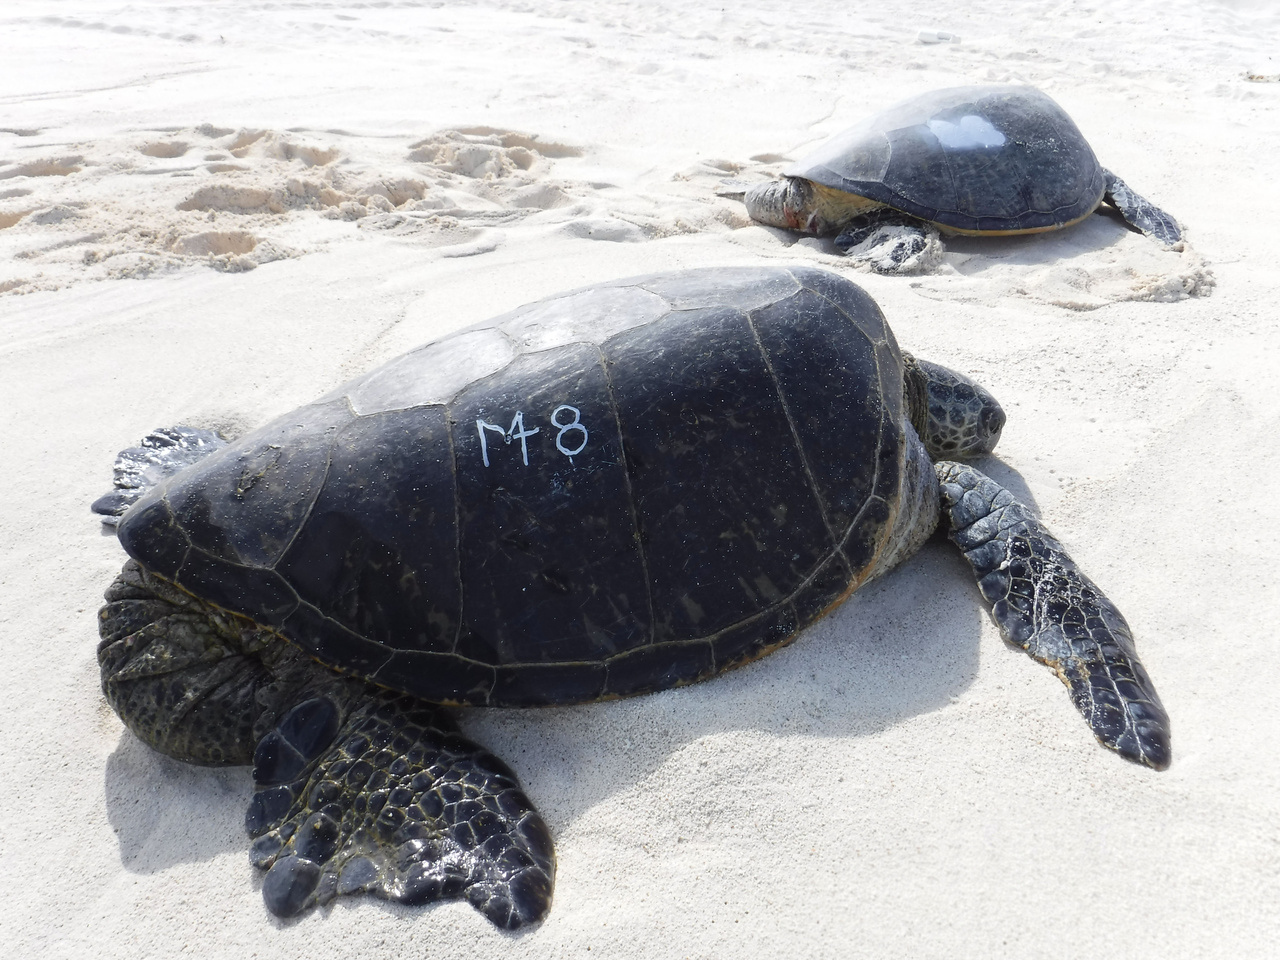 Green sea turtle with etched number on its shell in non-toxic paint on the shores of French Frigate Shoals, Northwestern Hawaiian Islands